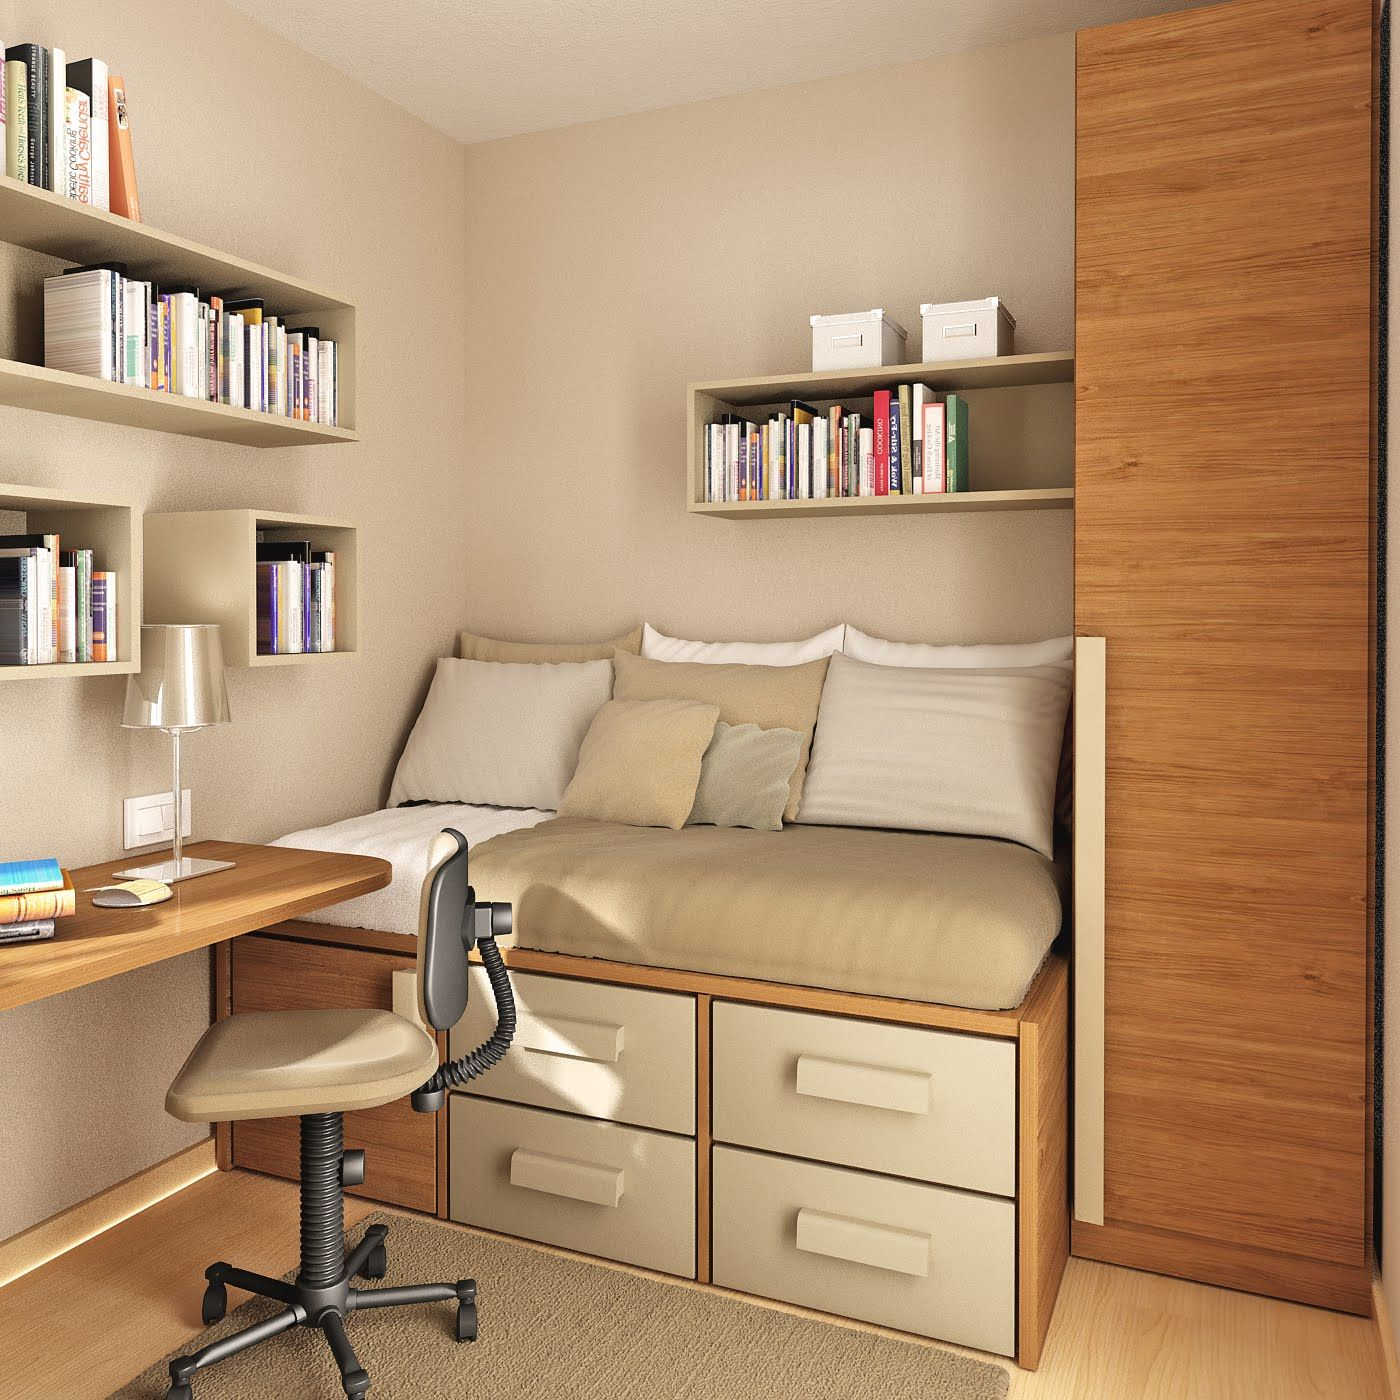 Decoration Decorating A Small Study Room In Your Home: Awesome Interior  Ideas Trendy Wall Mount Book Shelves Over Mounted Study Desk Feat Sleeper  Storage ... Part 87